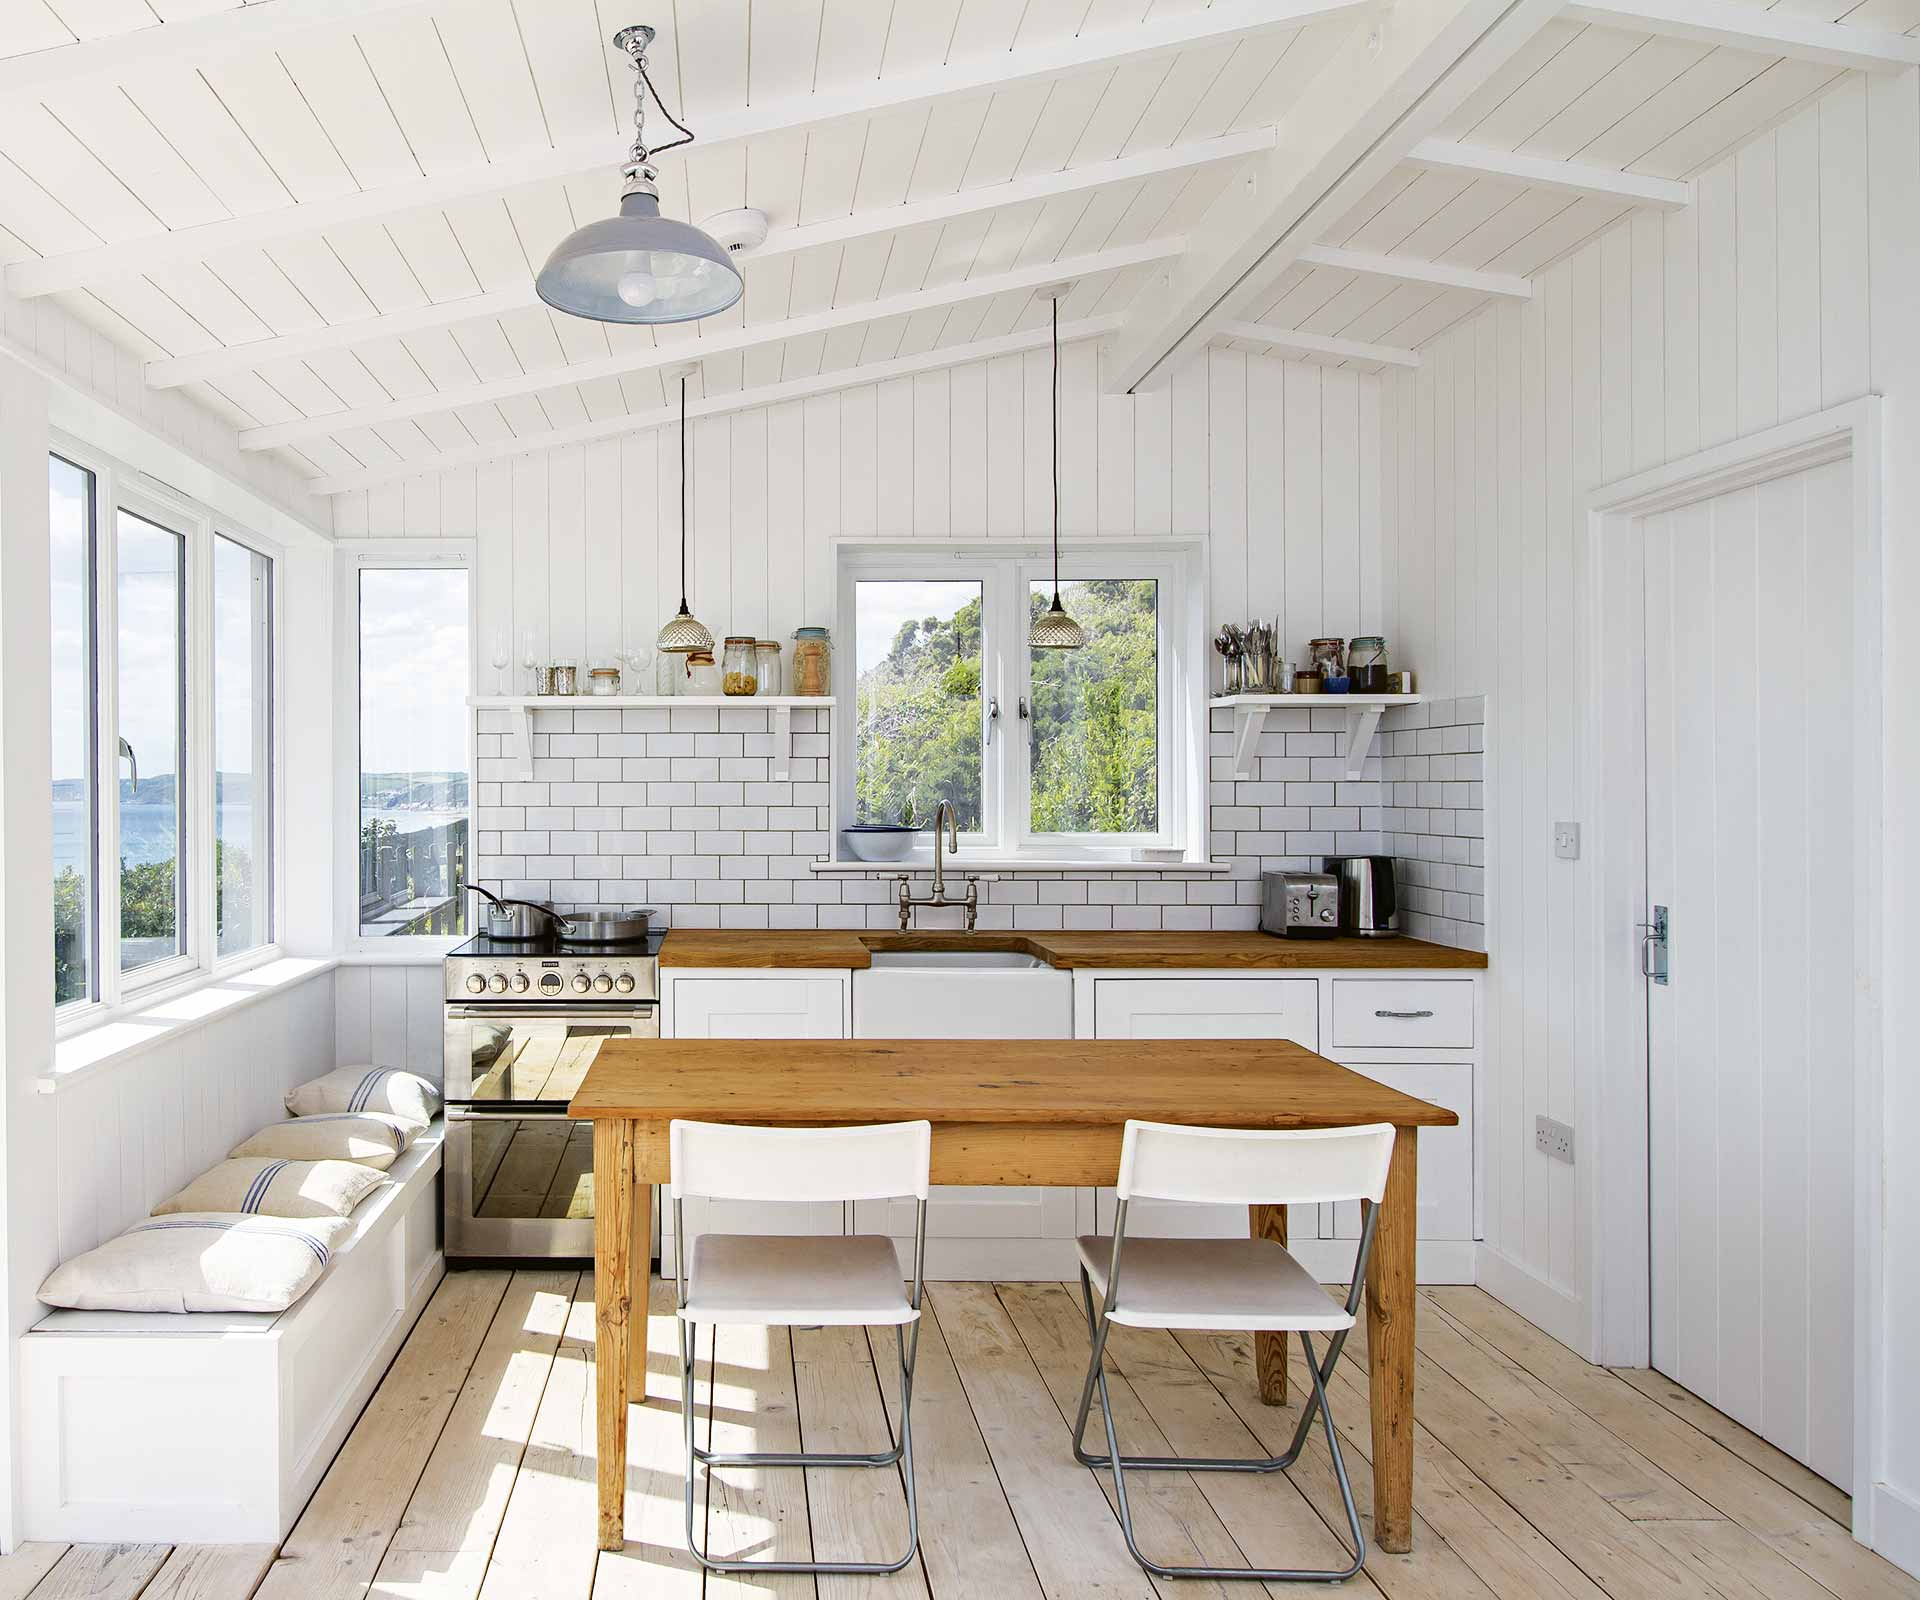 Shannon Vos: renovation budget tips to know